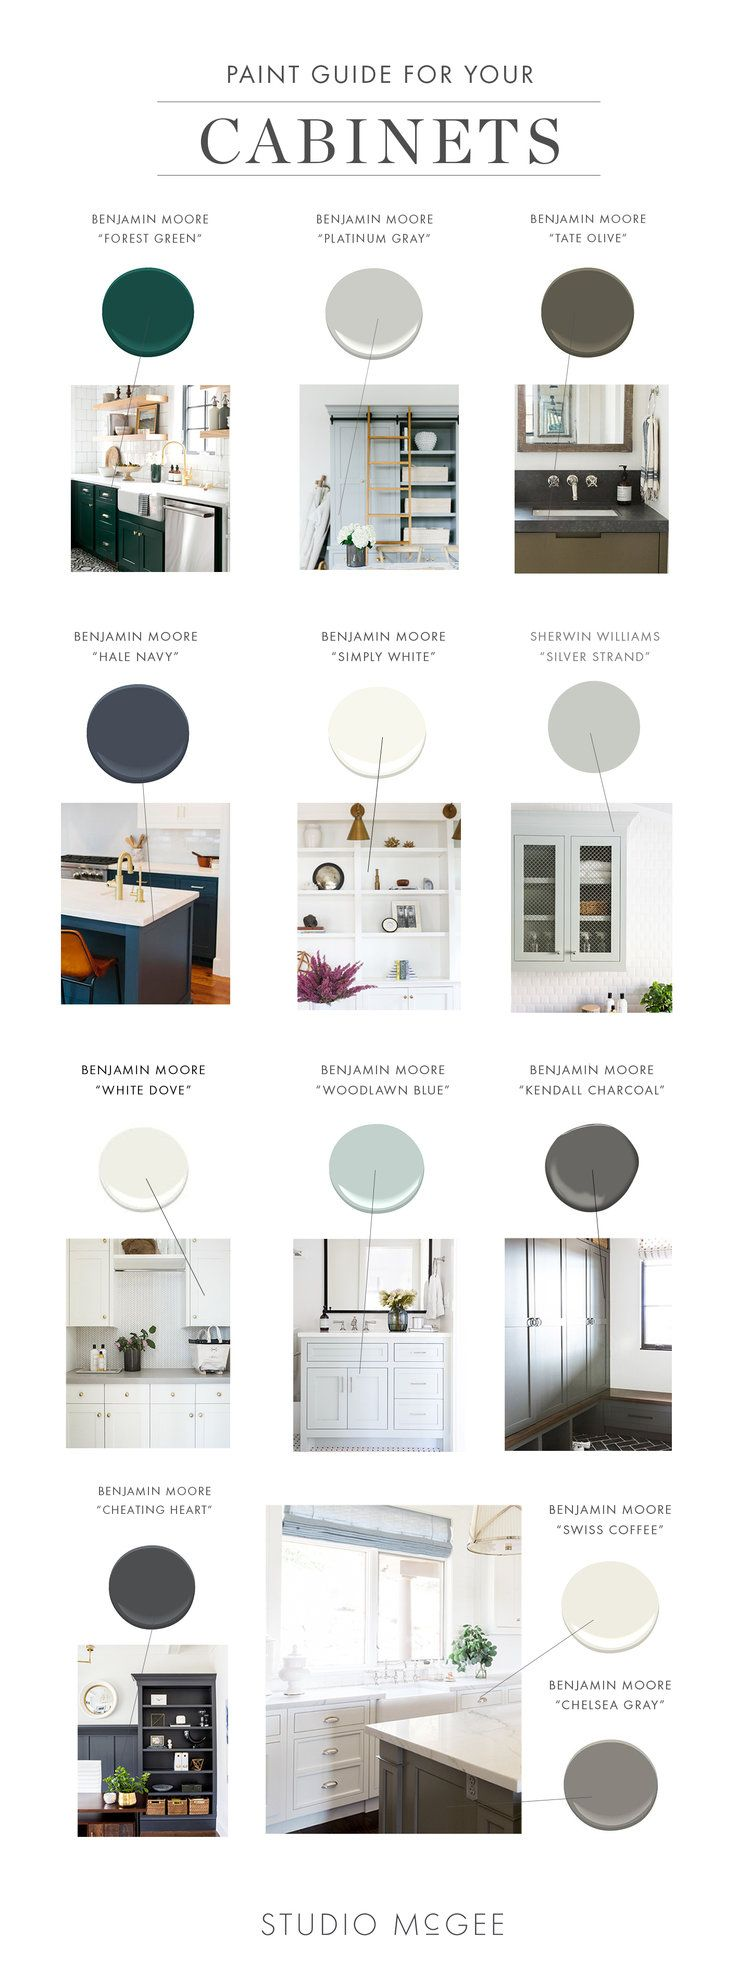 Our Paint Guide to Cabinet Colors #swisscoffeebenjaminmoore